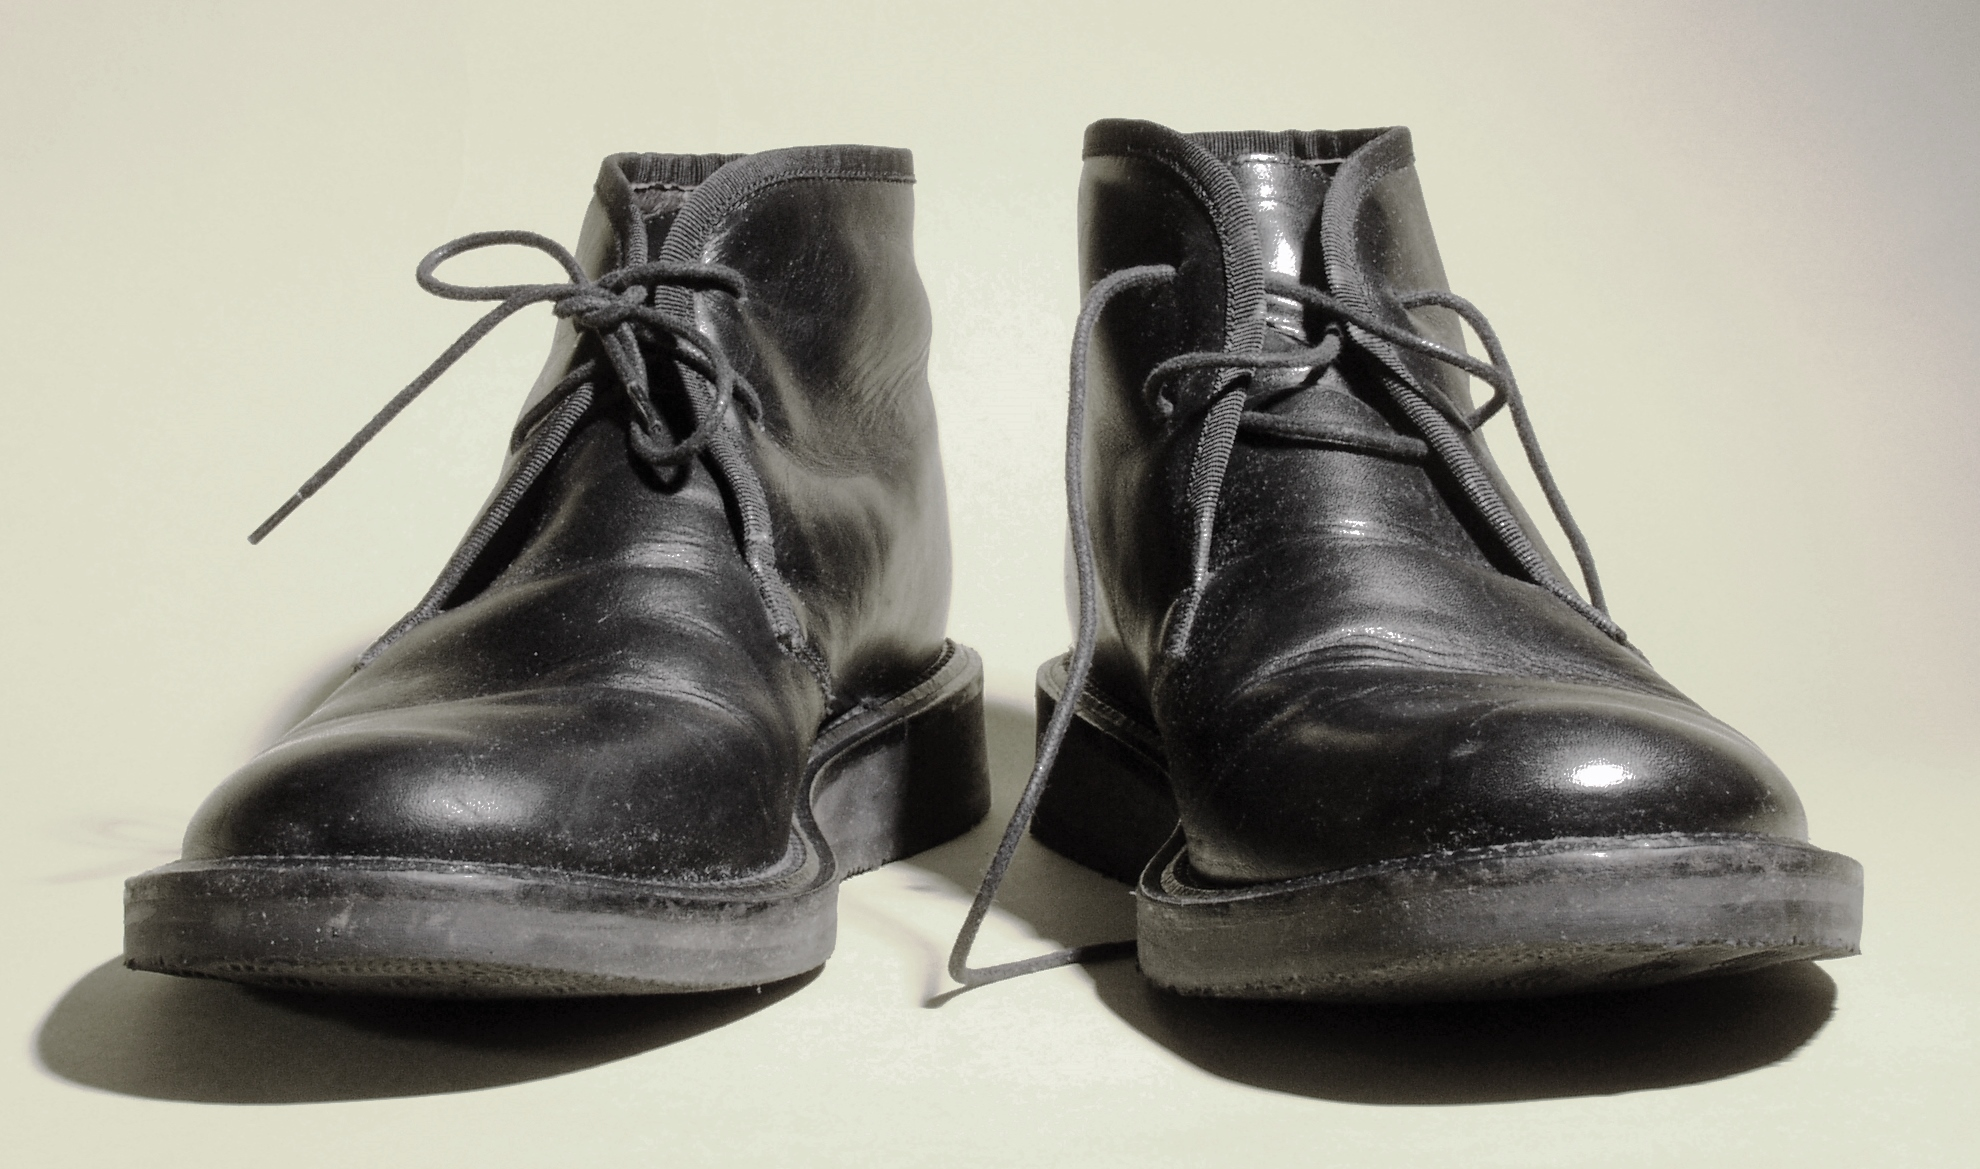 To get selection boards to hear you, put yourself in their shoes